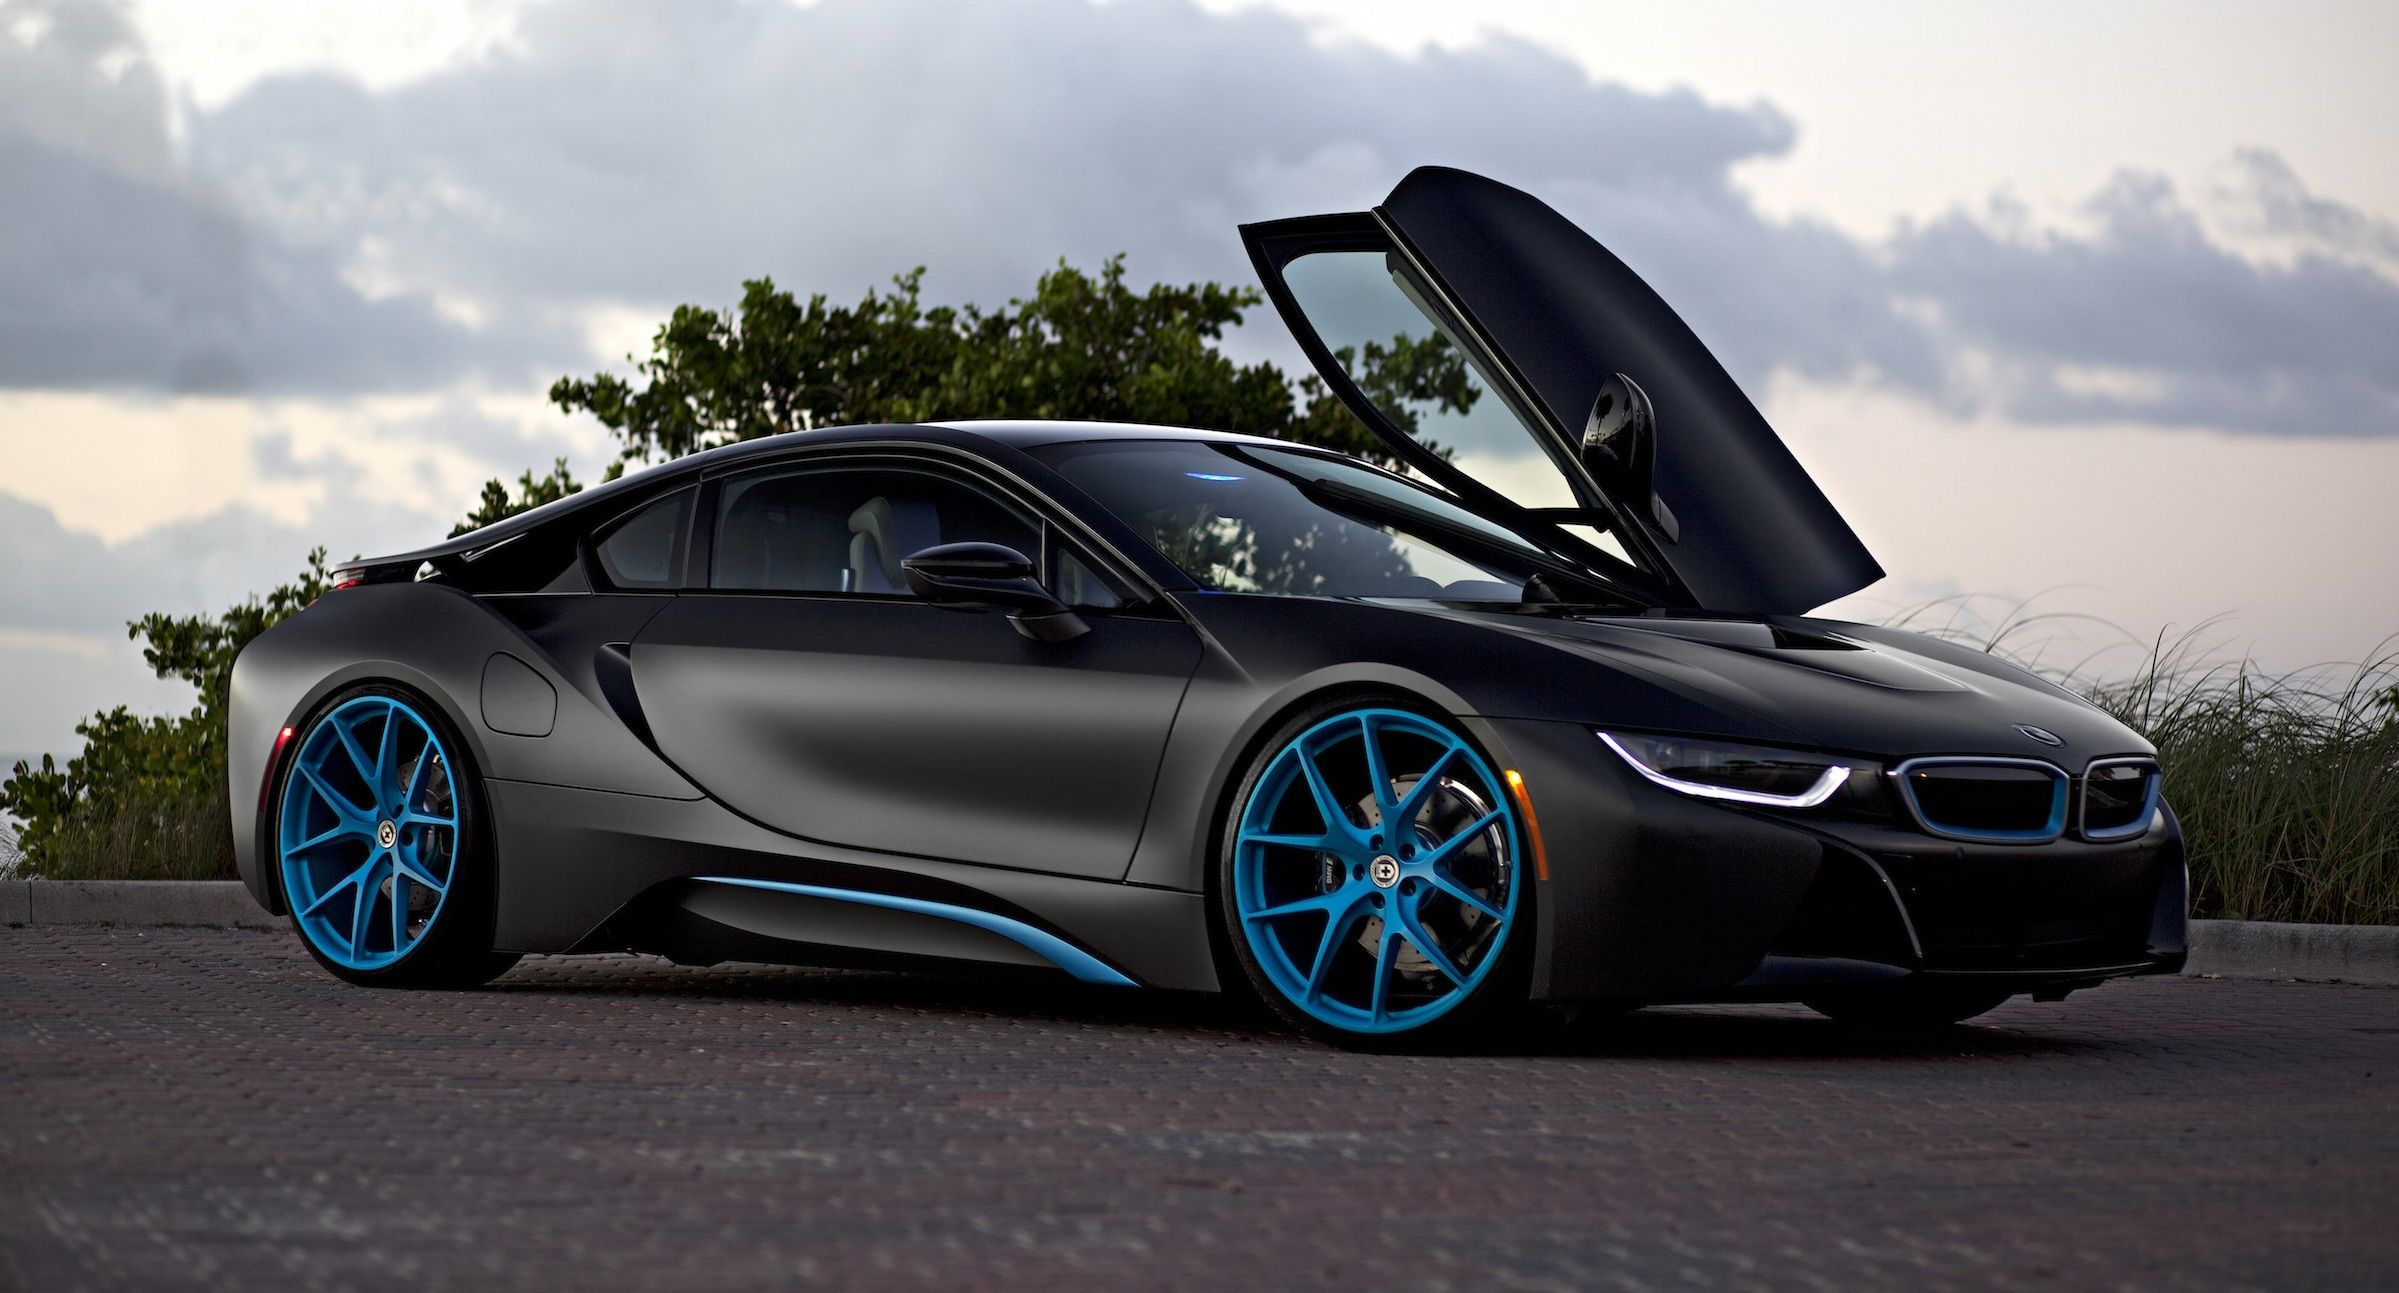 Bmw I8 Matte Black Cars Pinterest Bmw I8 Bmw And Cars